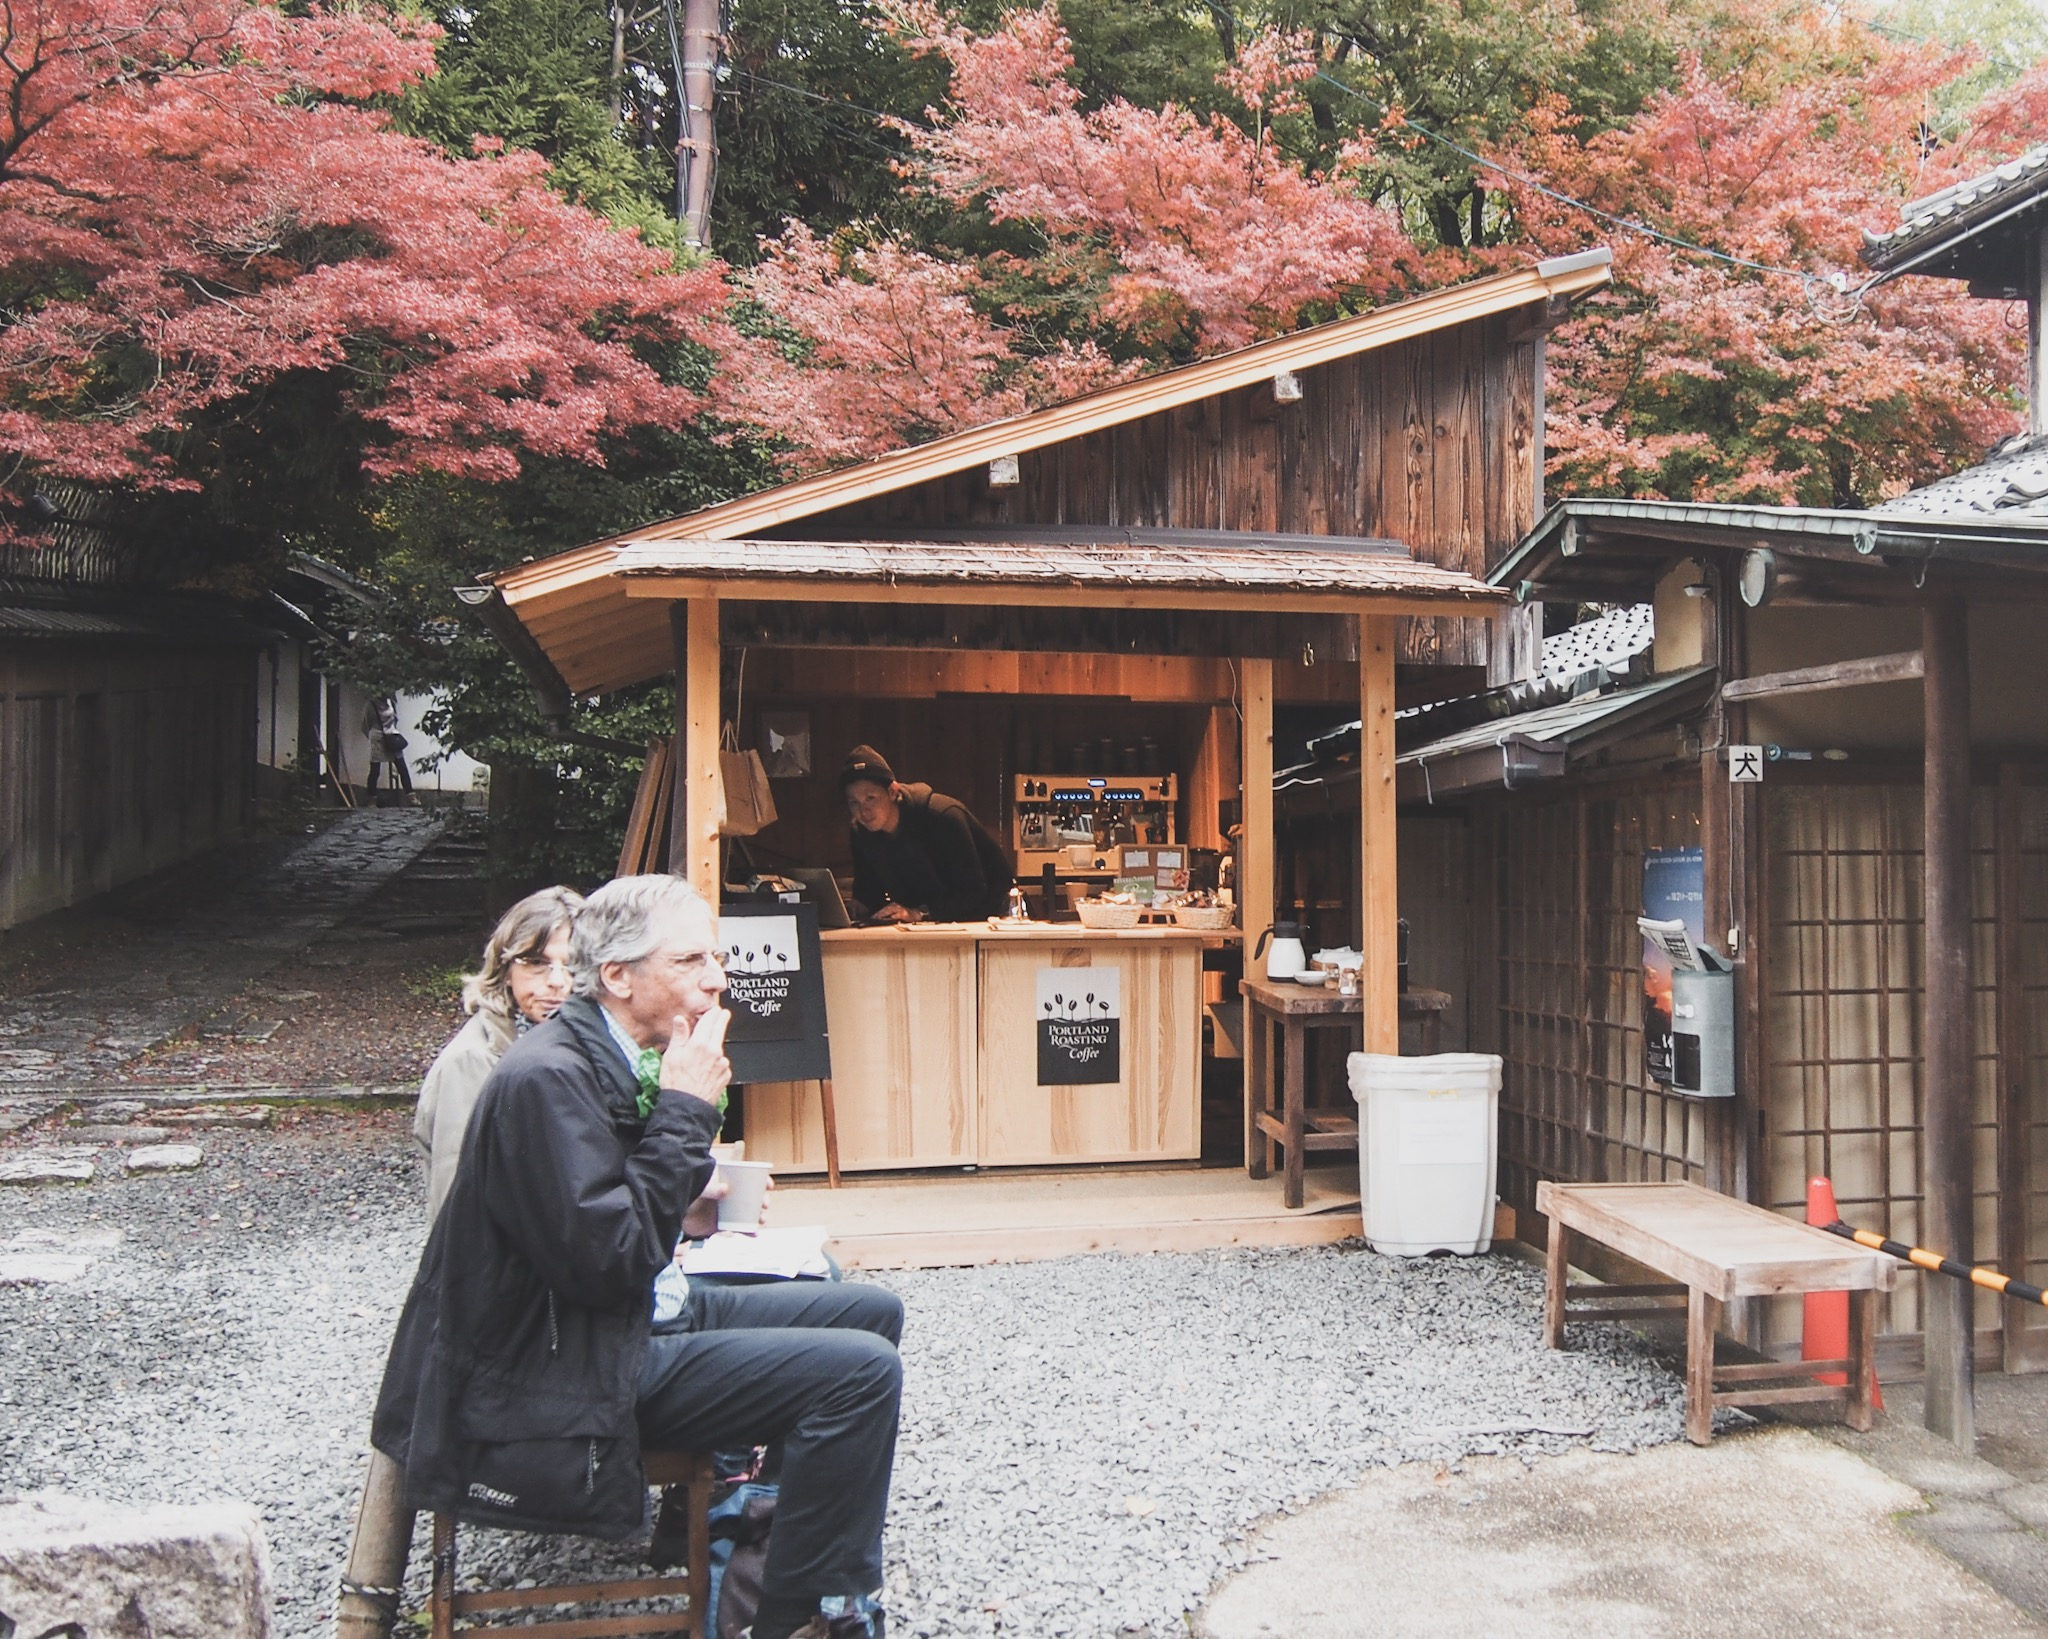 A little shop along Nene-no-Michi in Kyoto, Japan